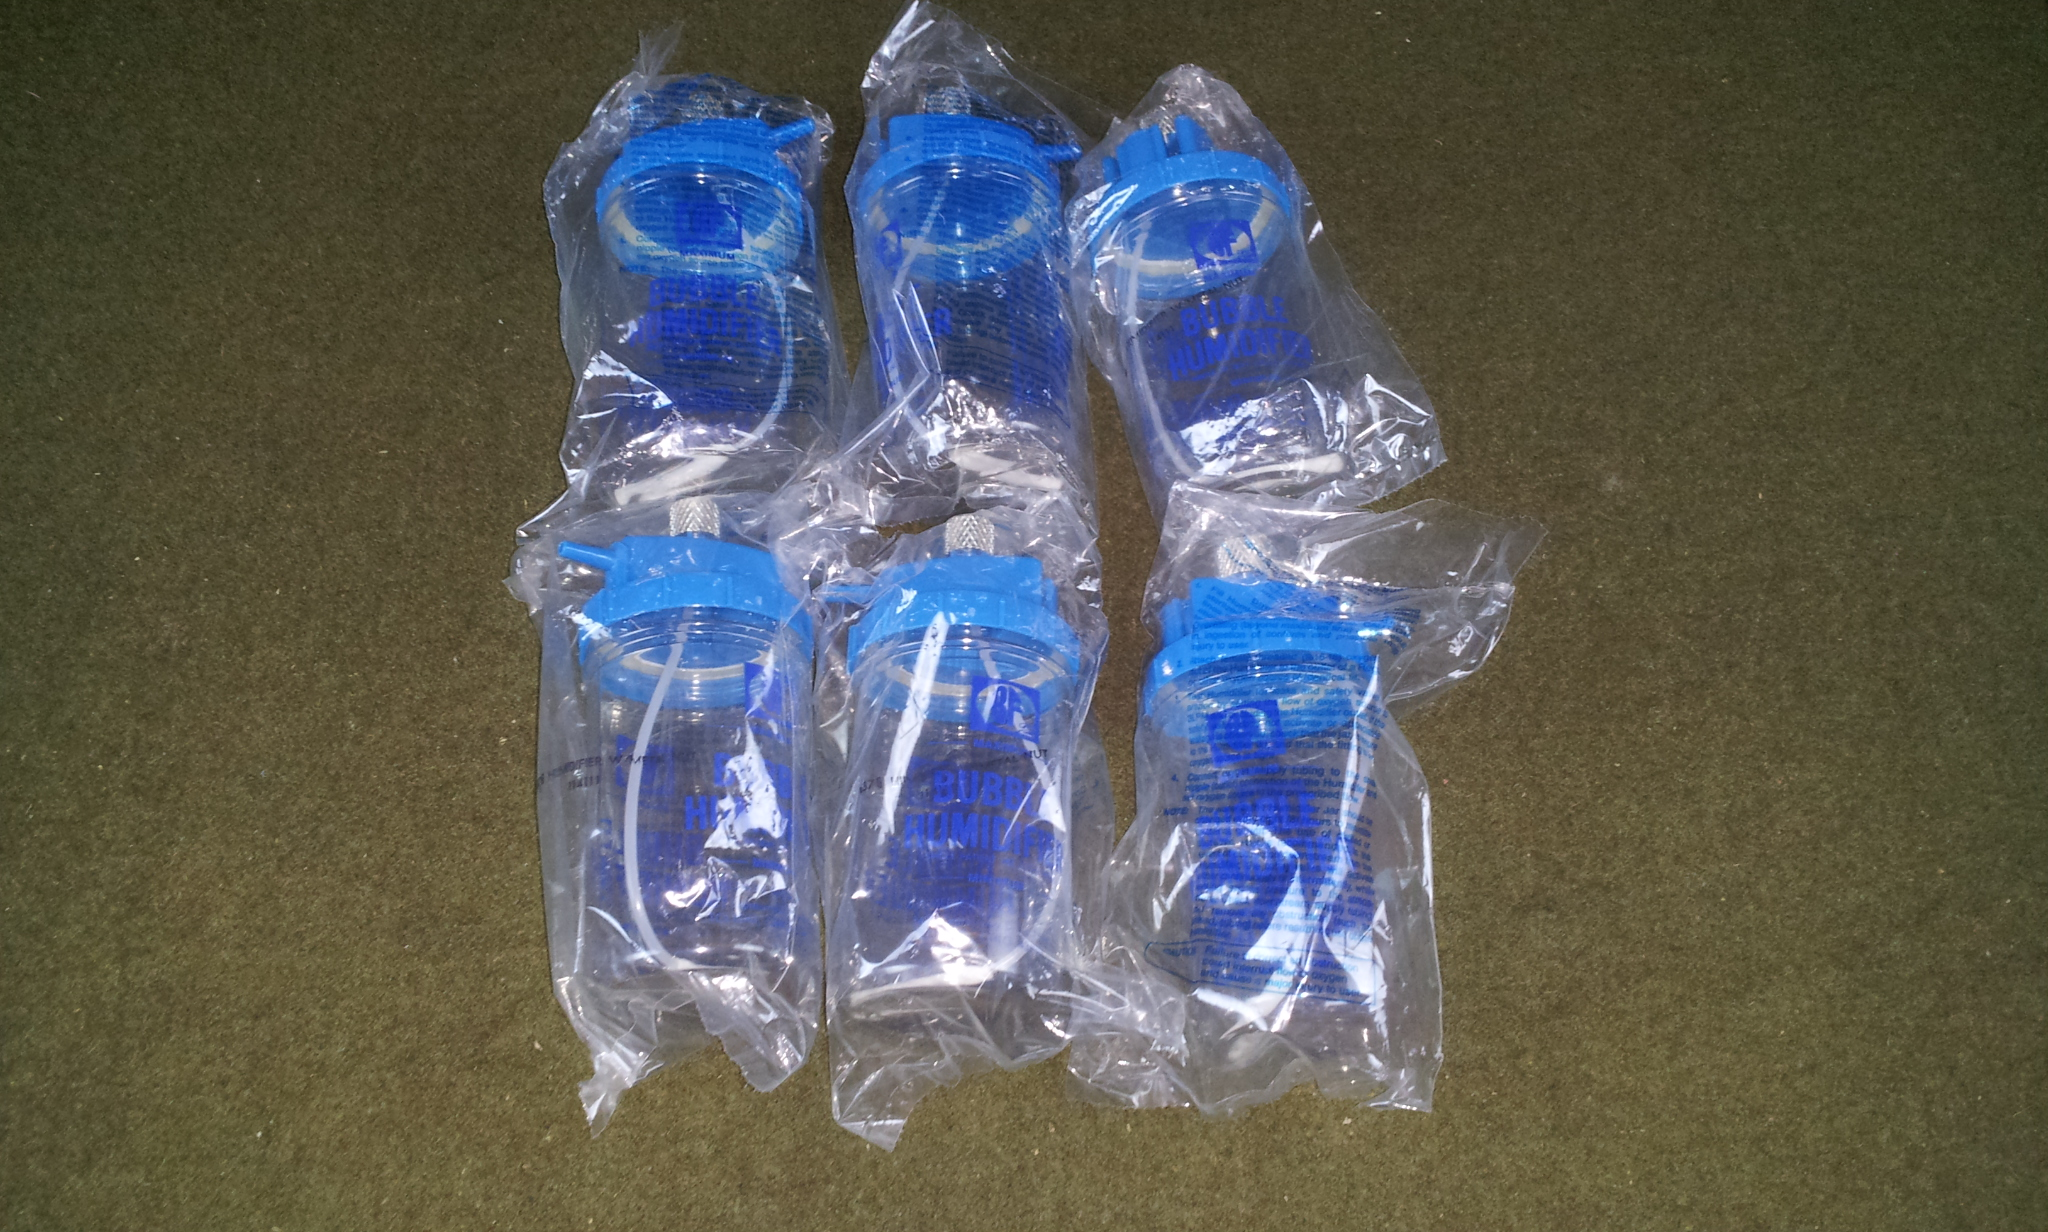 Six 6 B F Medical Products Inc Oxygen Bubble Humidifier Bottles eBay #2643A5